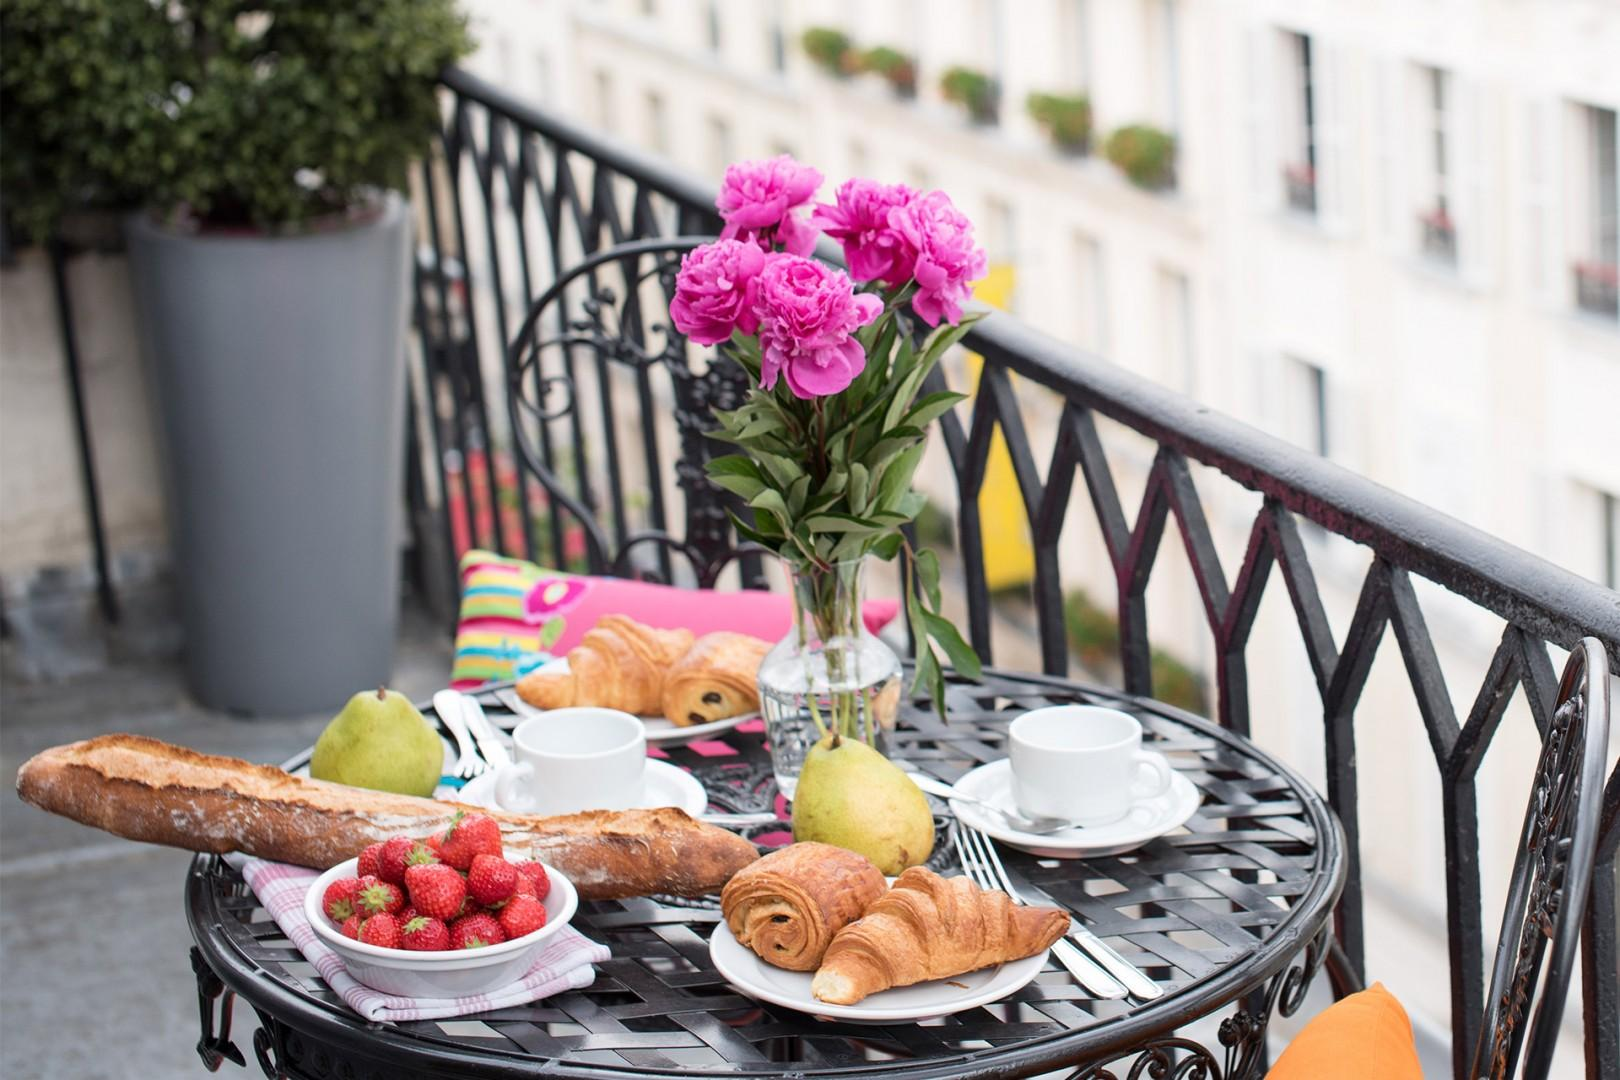 You will love the extra-wide balcony with an iron bench, bistro table and views!